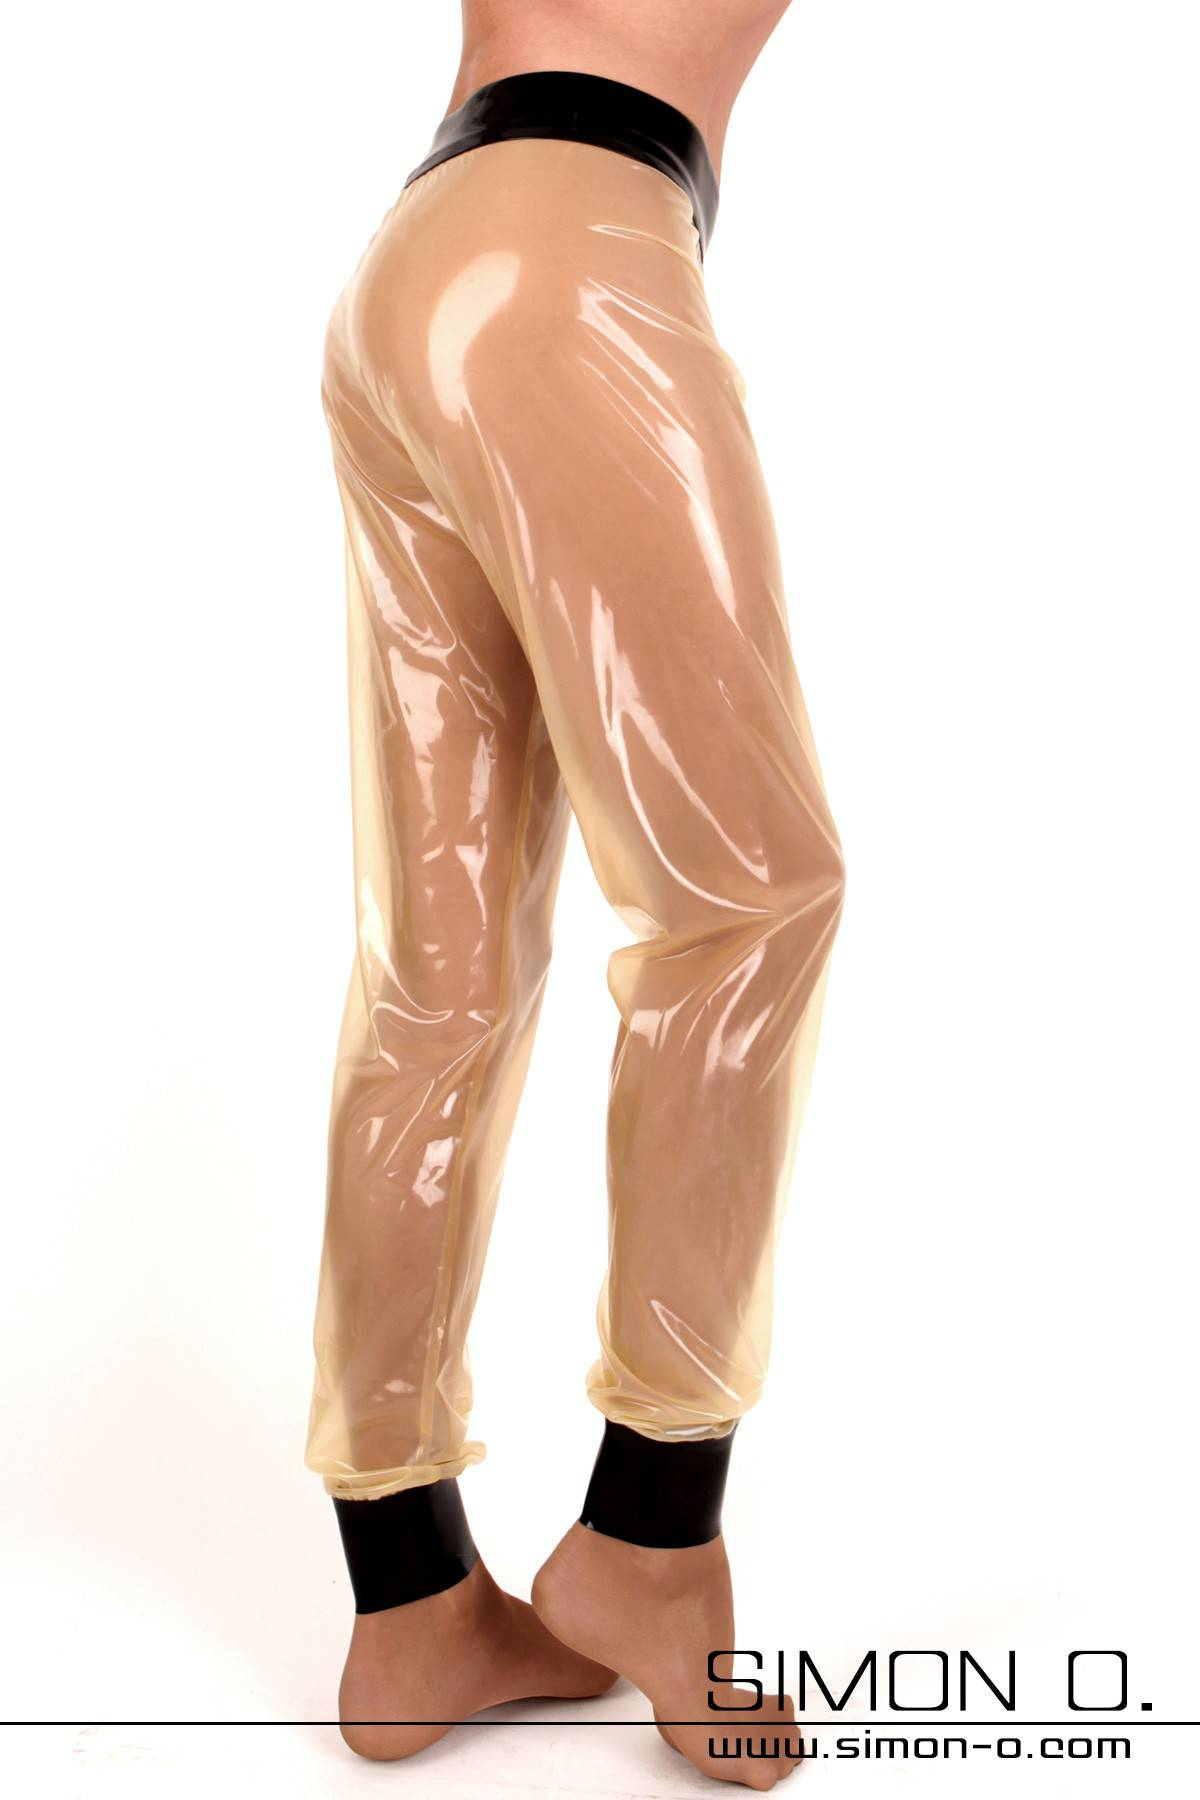 Translucent shiny latex pants with black waistband and leg cuffs